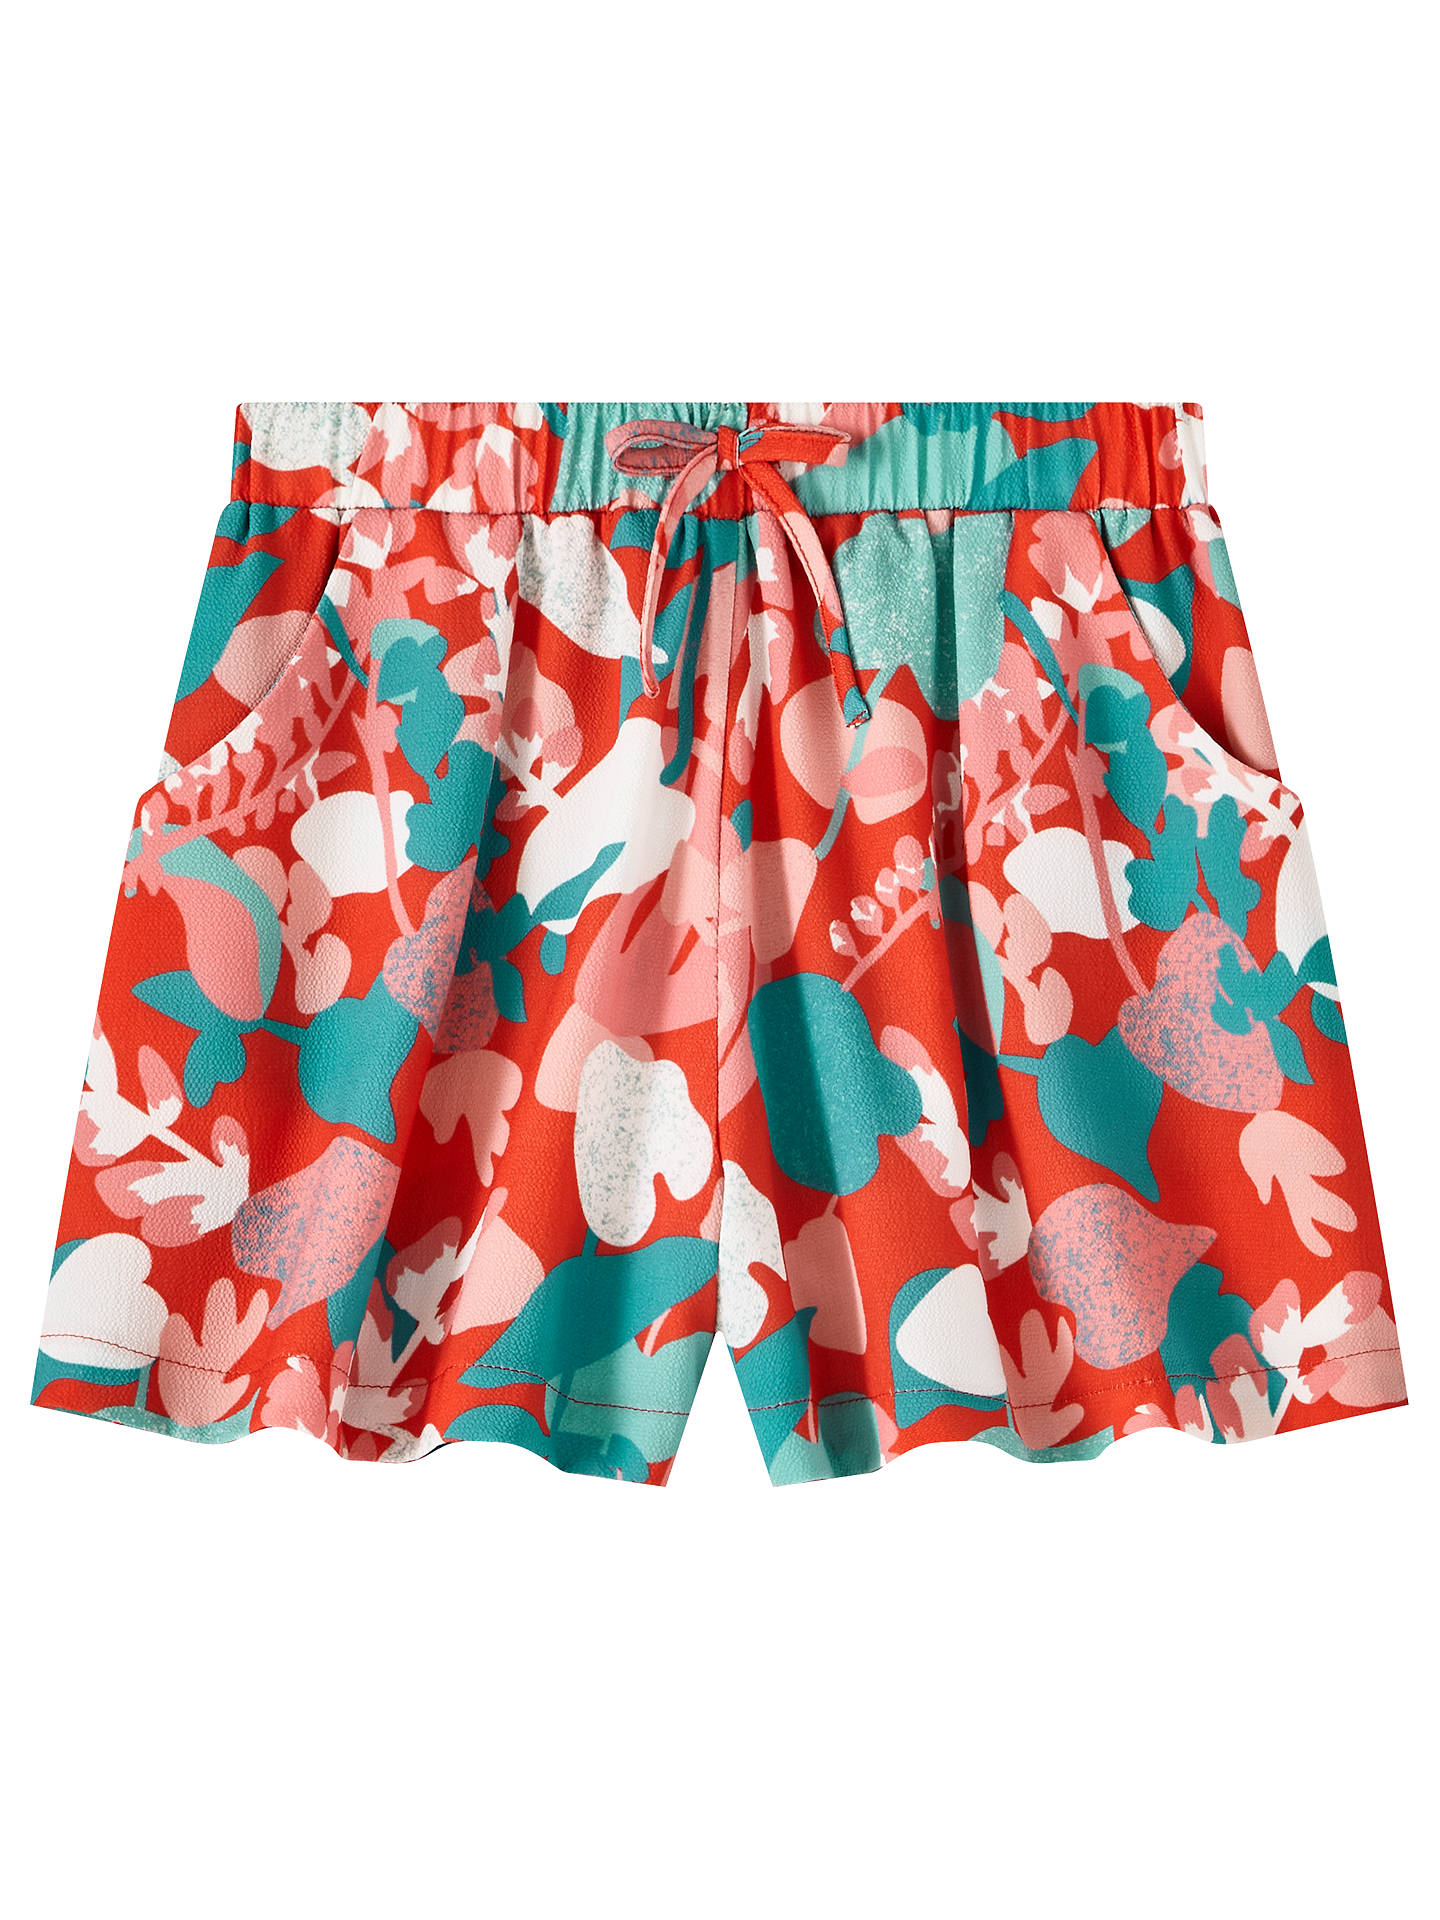 Buy John Lewis & Partners Girls' Floral Shorts, Multi, 8 years Online at johnlewis.com